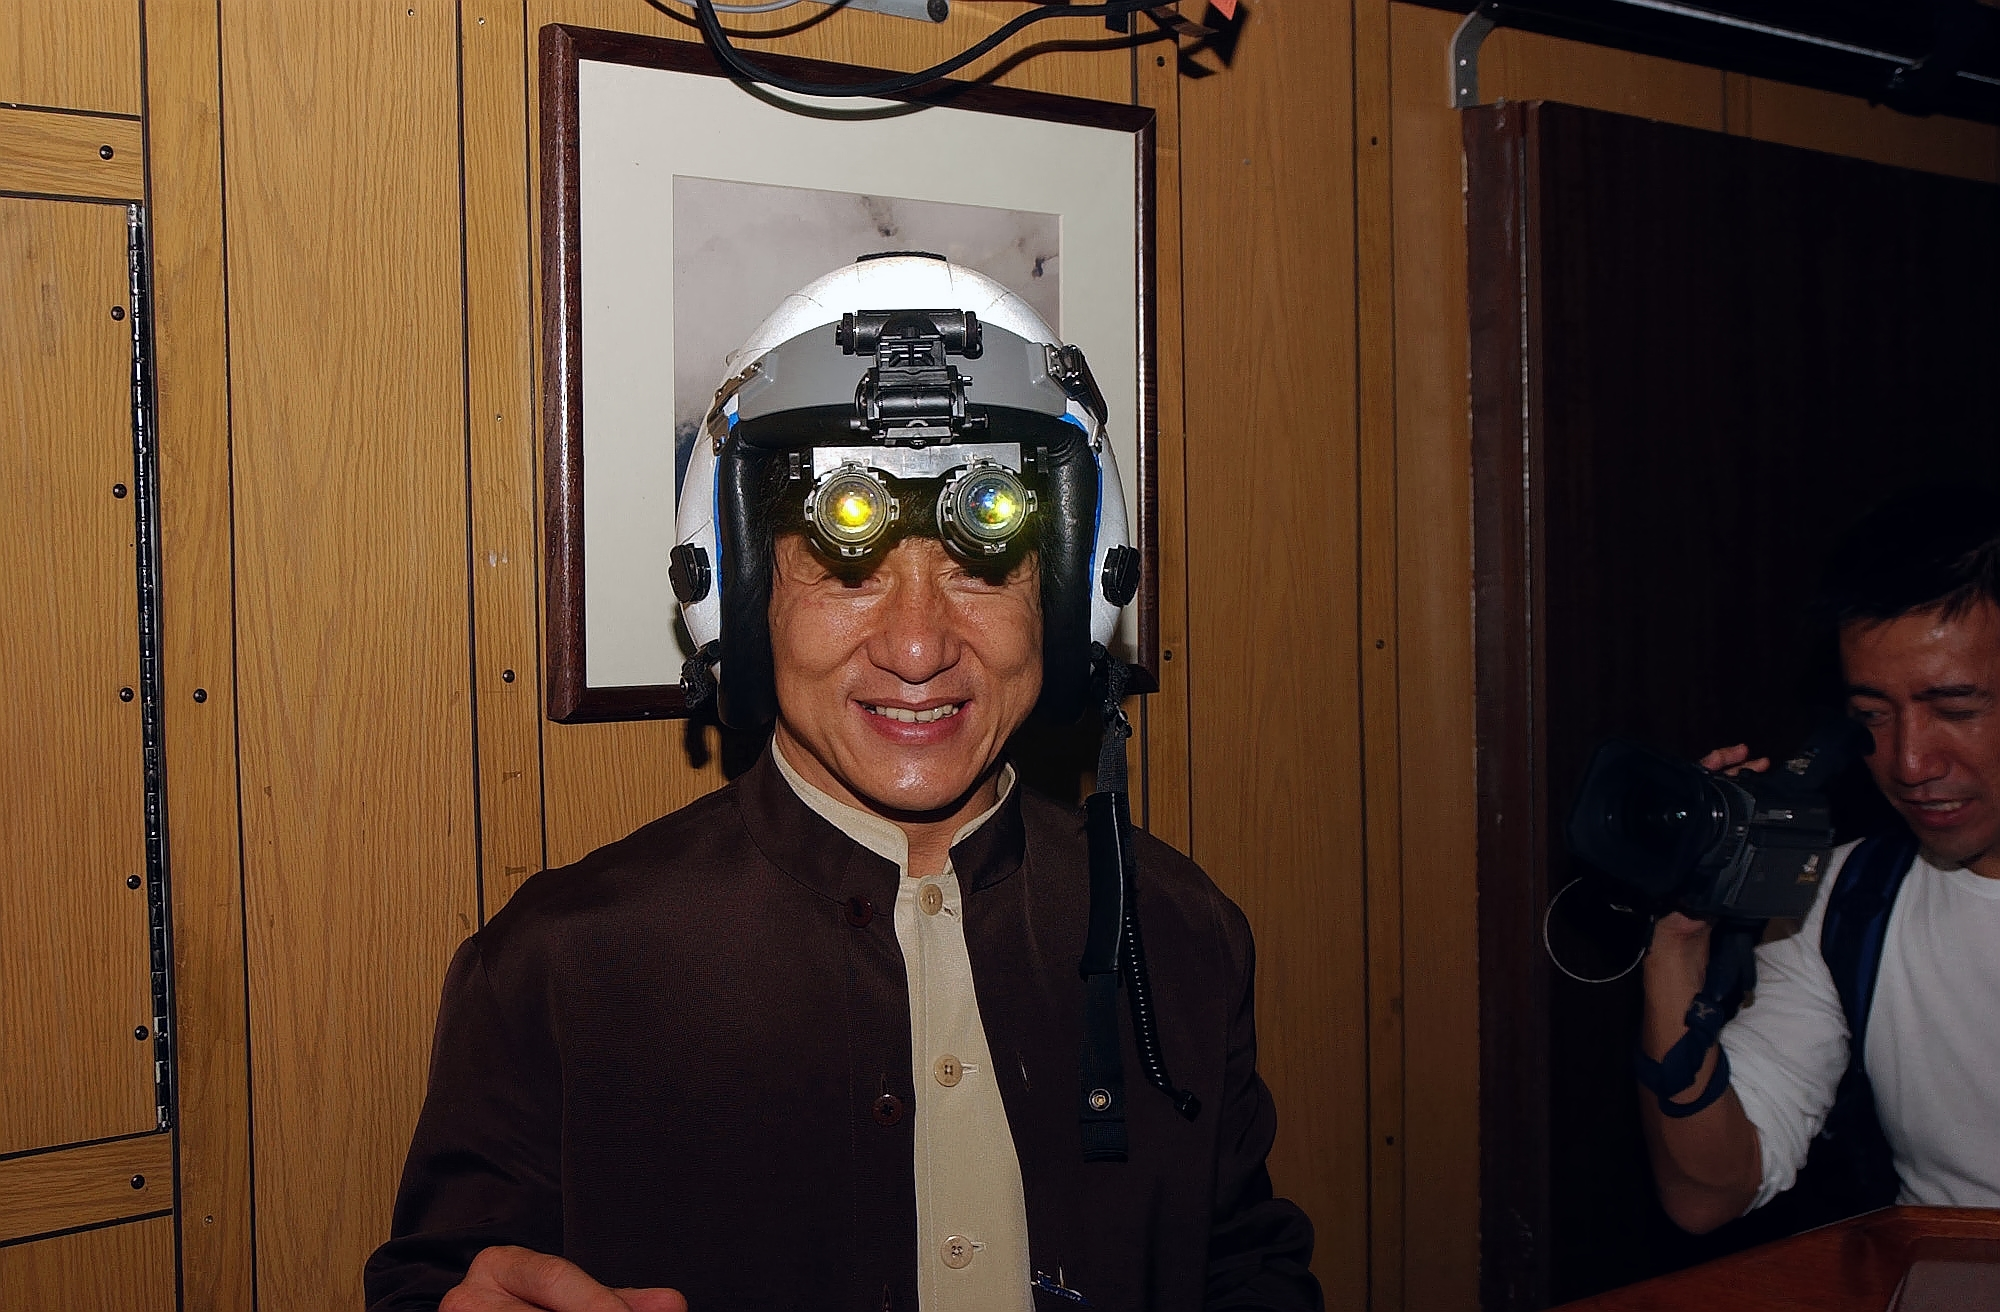 jackie chan tries on a fighter pilots helmet with night vision goggles